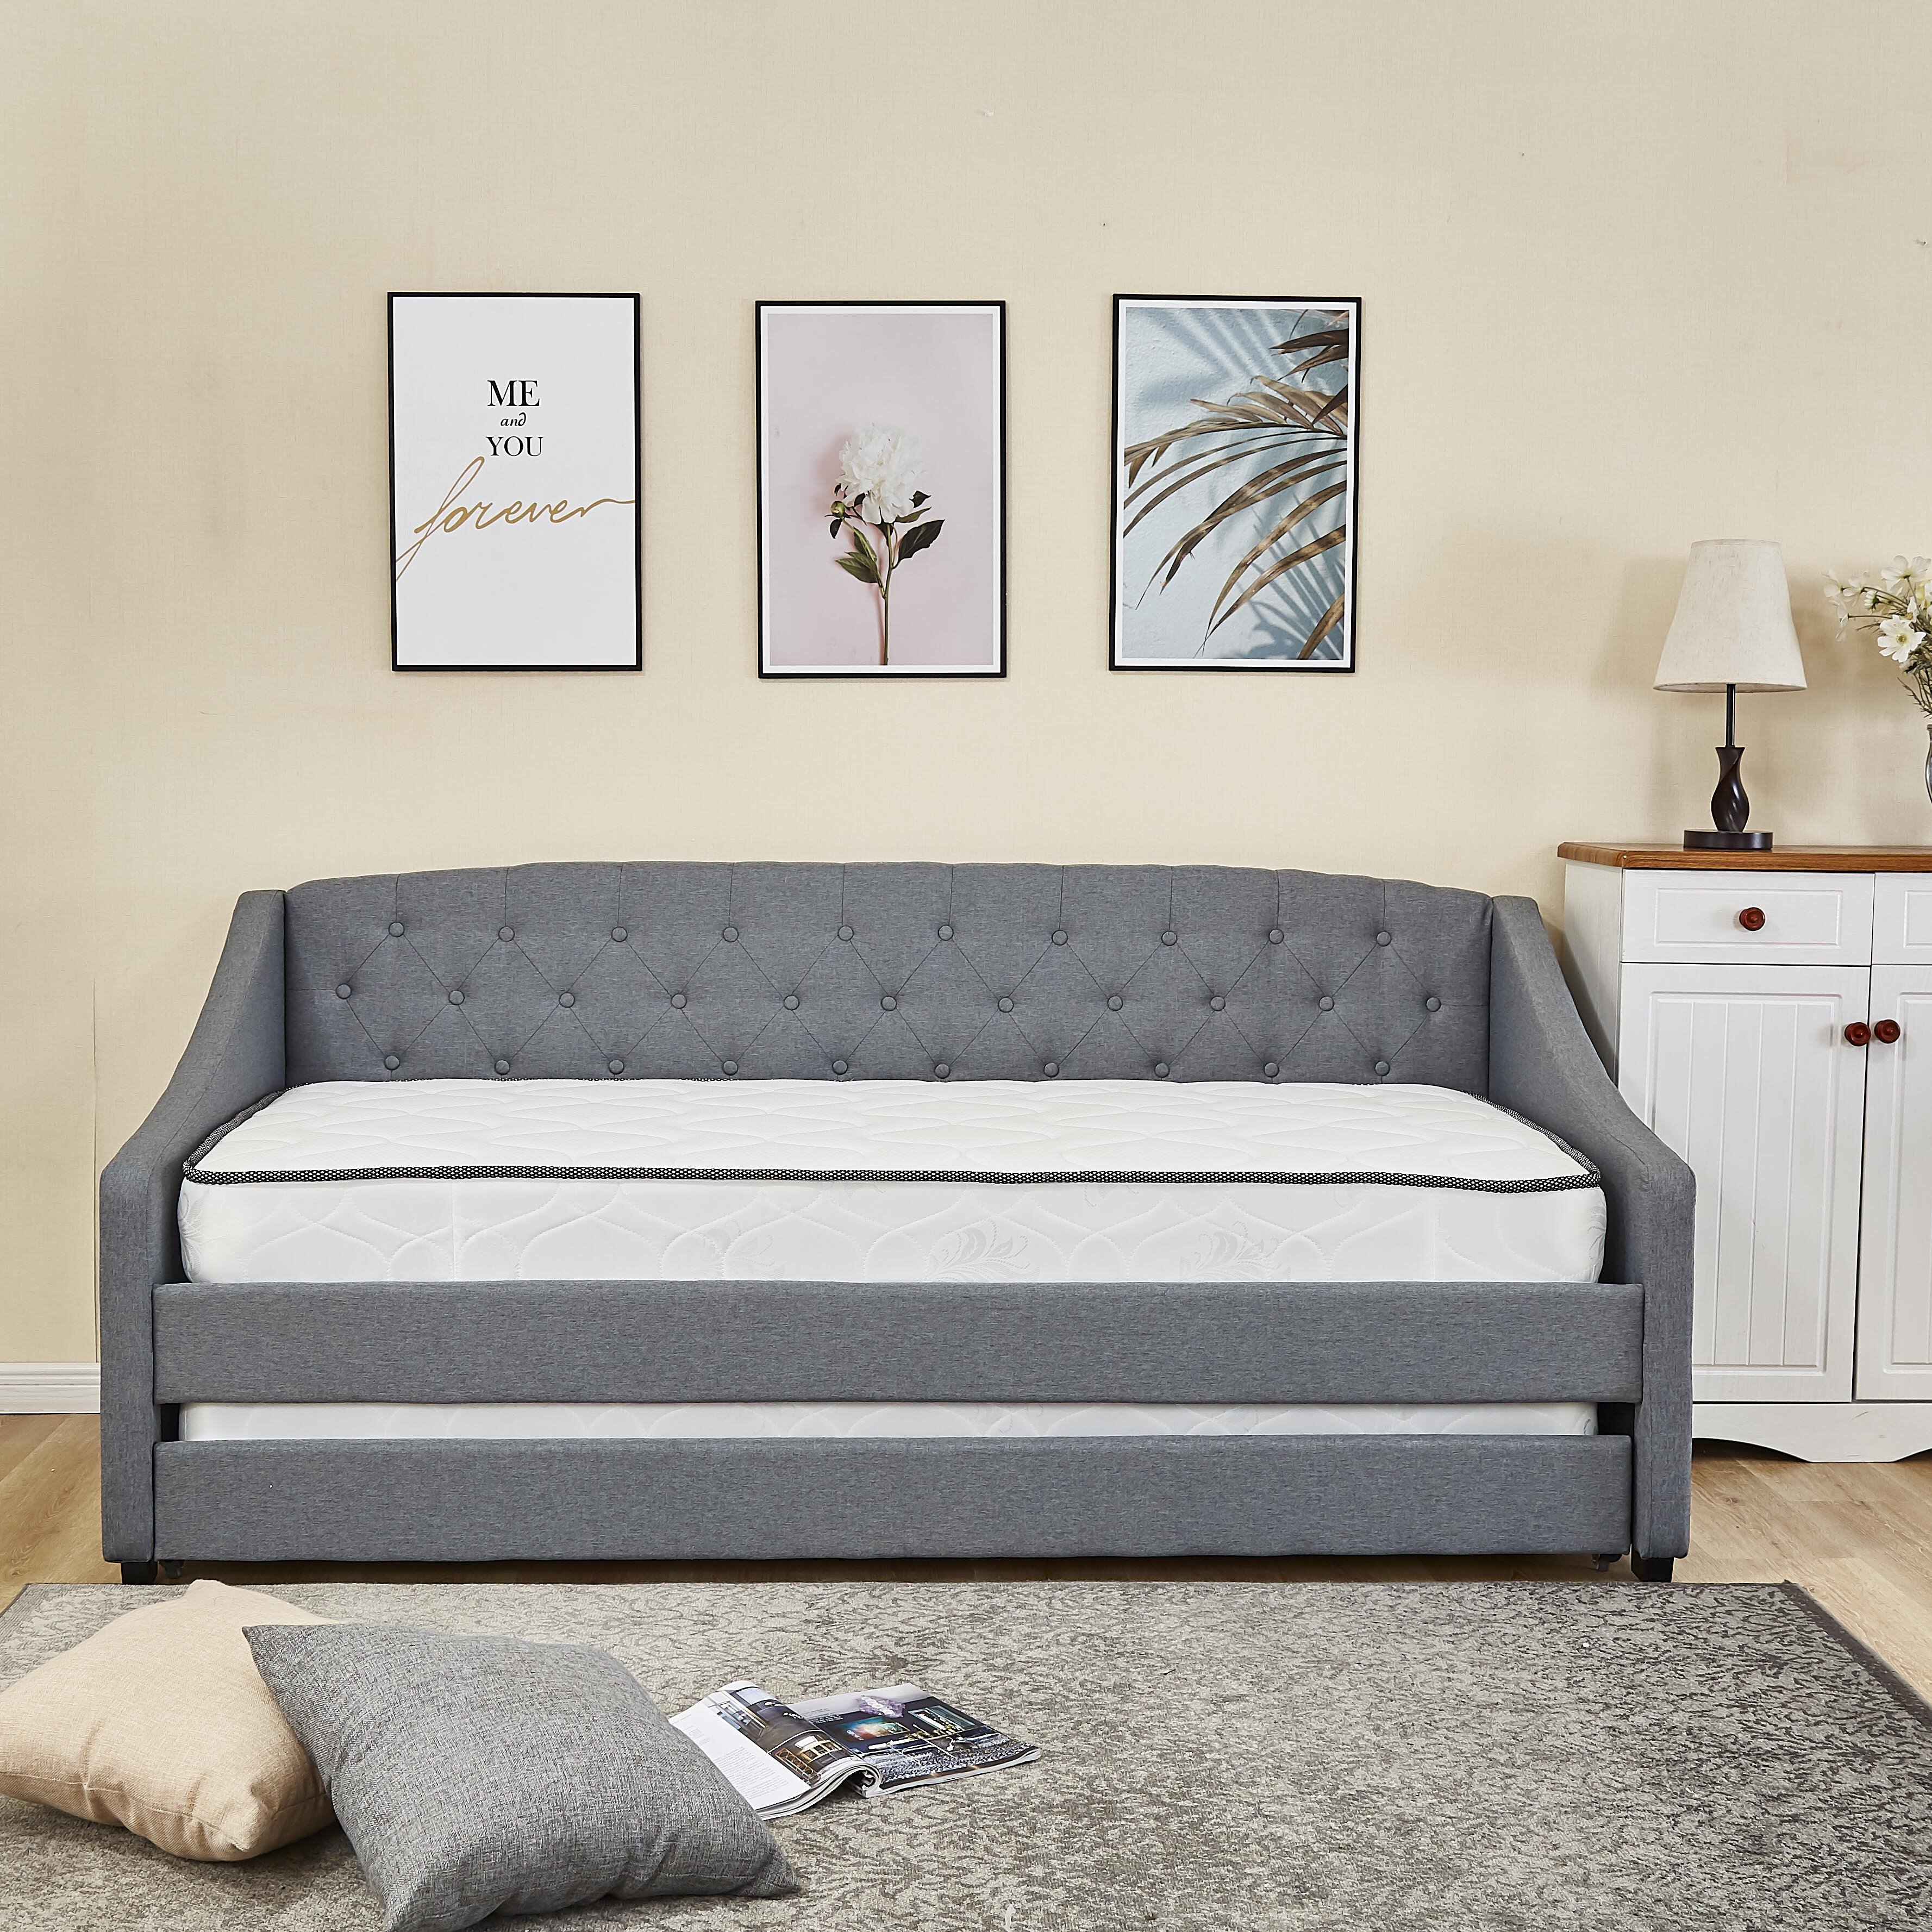 Upholstered Daybeds Guest Beds You Ll Love Wayfair Co Uk